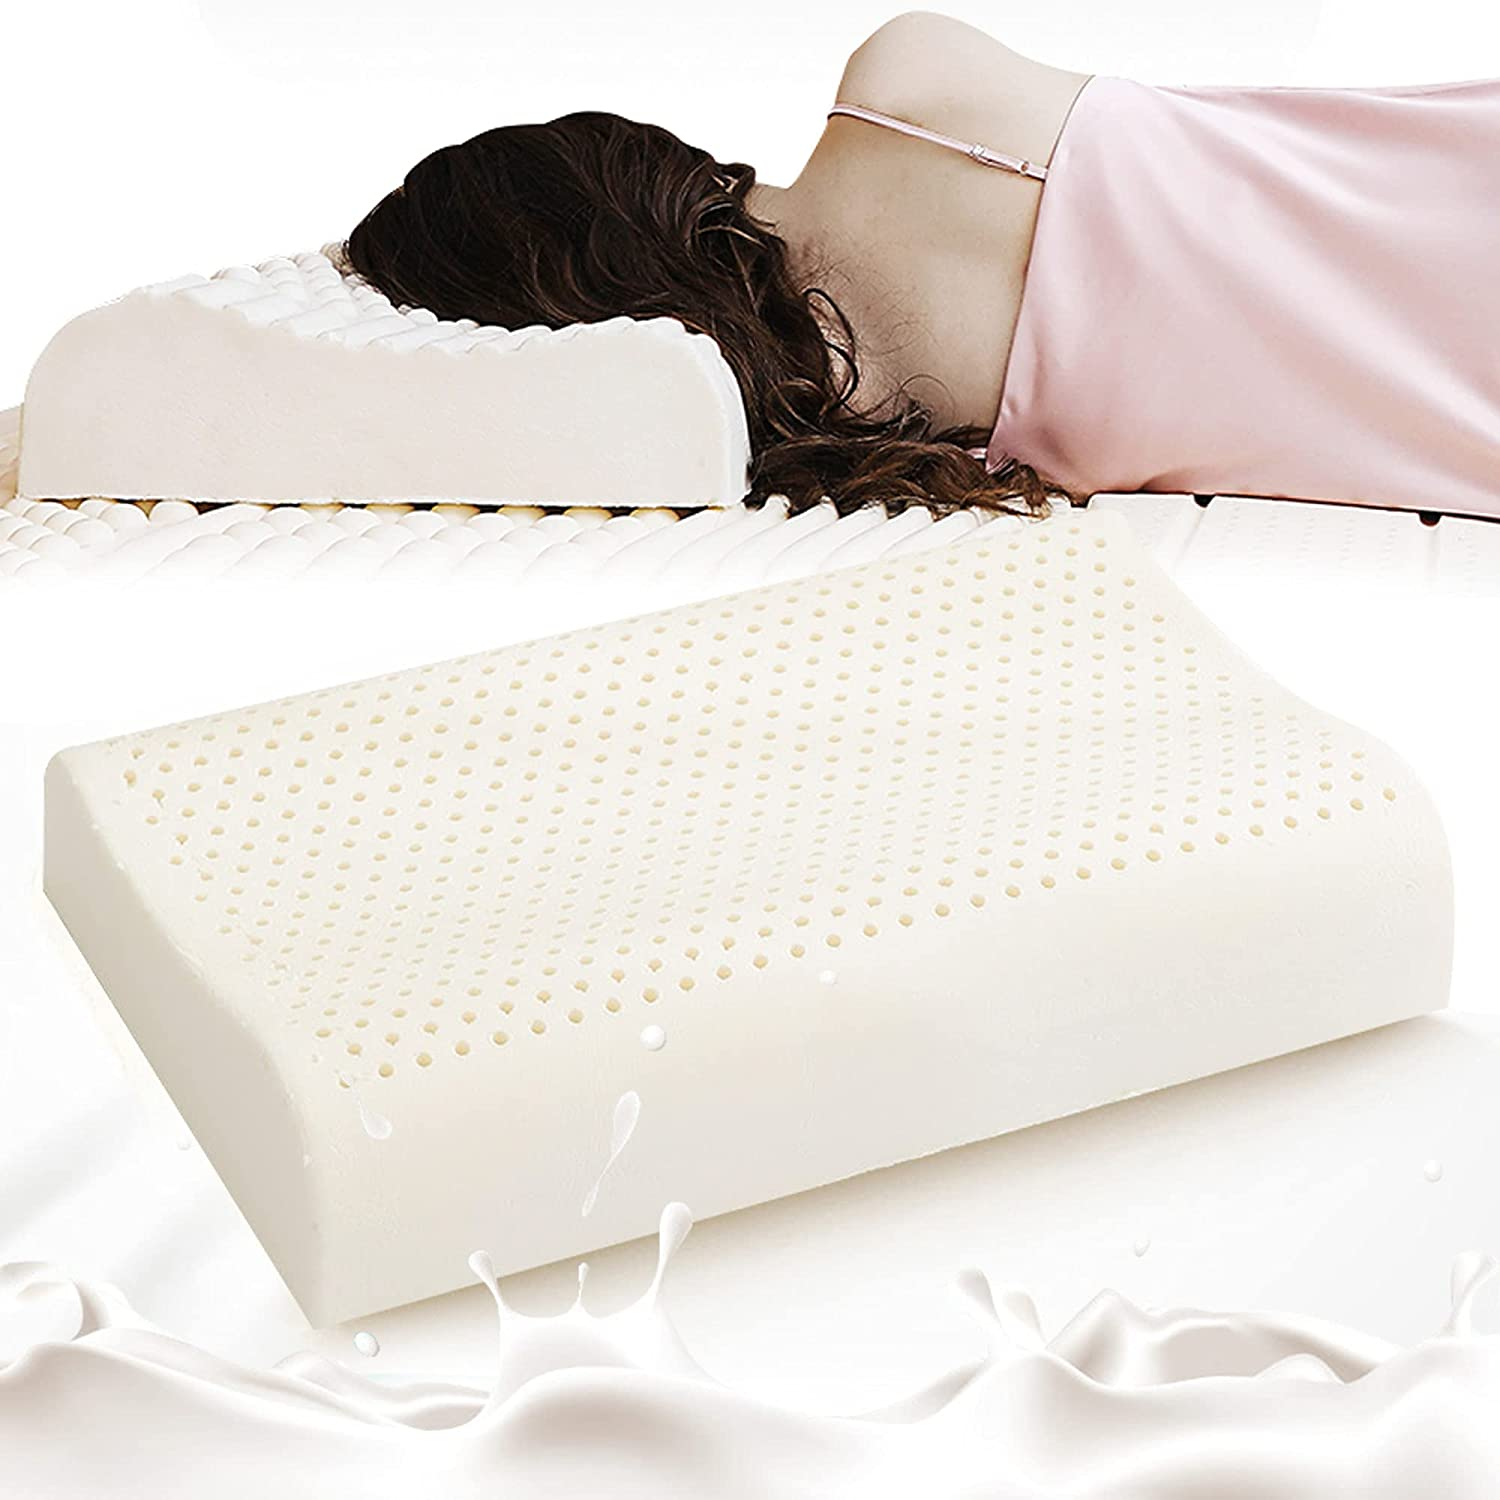 PATEX Kansas City Mall Latex Pillow Contour Don't miss the campaign for Extra Brea Sleeping Soft